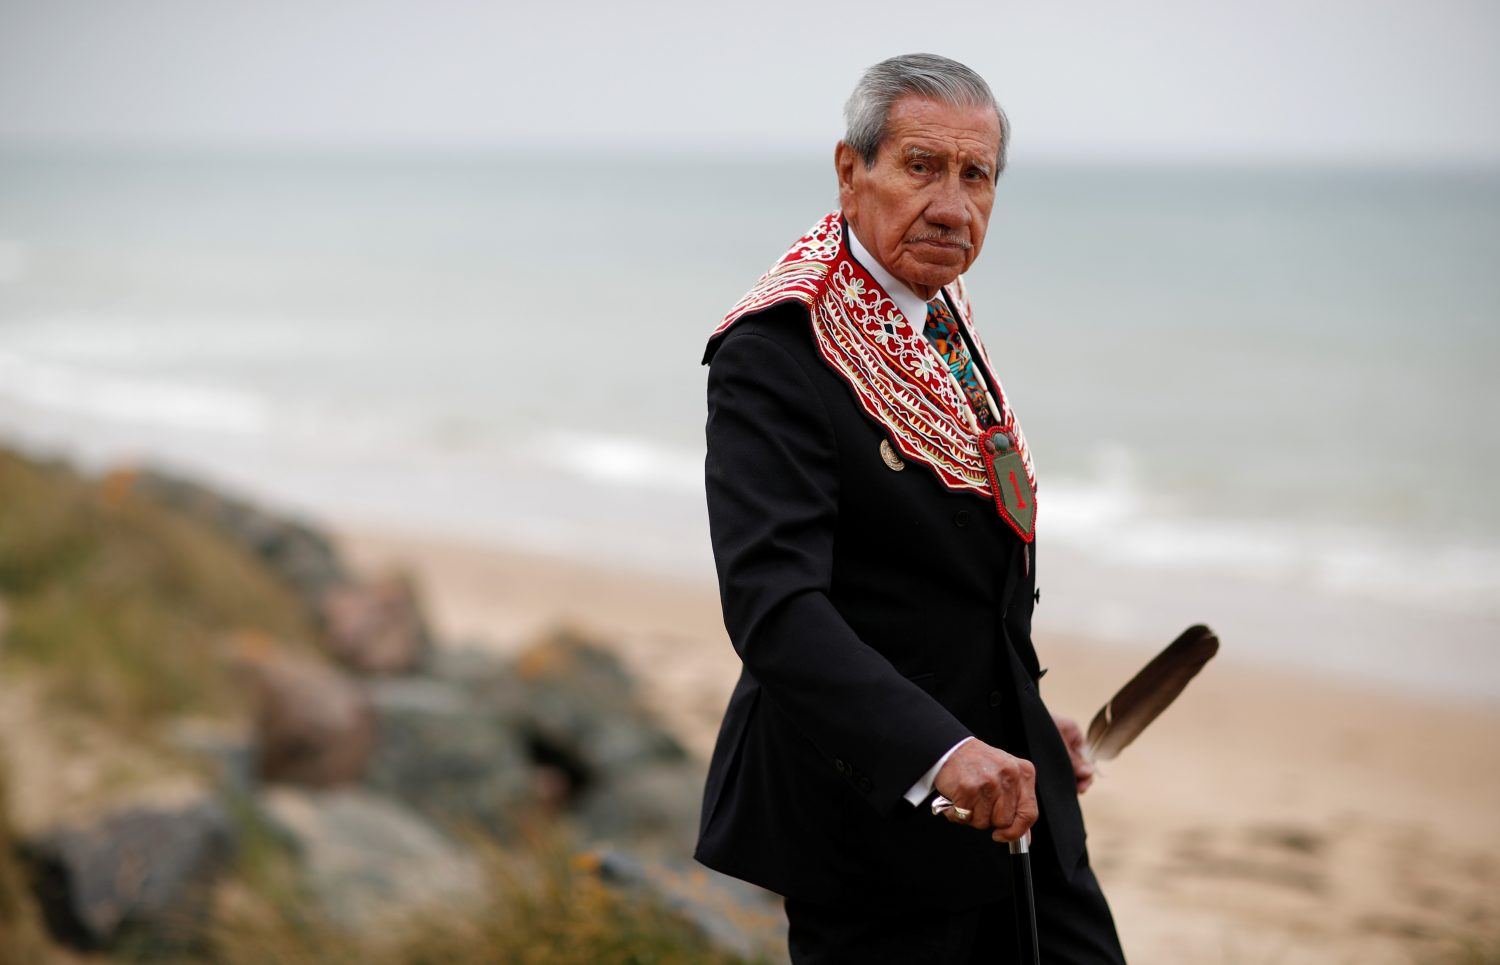 Charles Norman Shay, 94, a Penobscot Native American Indian WWII veteran, poses as he attends an interview with Reuters in Saint-Laurent-sur-Mer, near Omaha Beach, France, May 18, 2019. REUTERS/Christian Hartmann